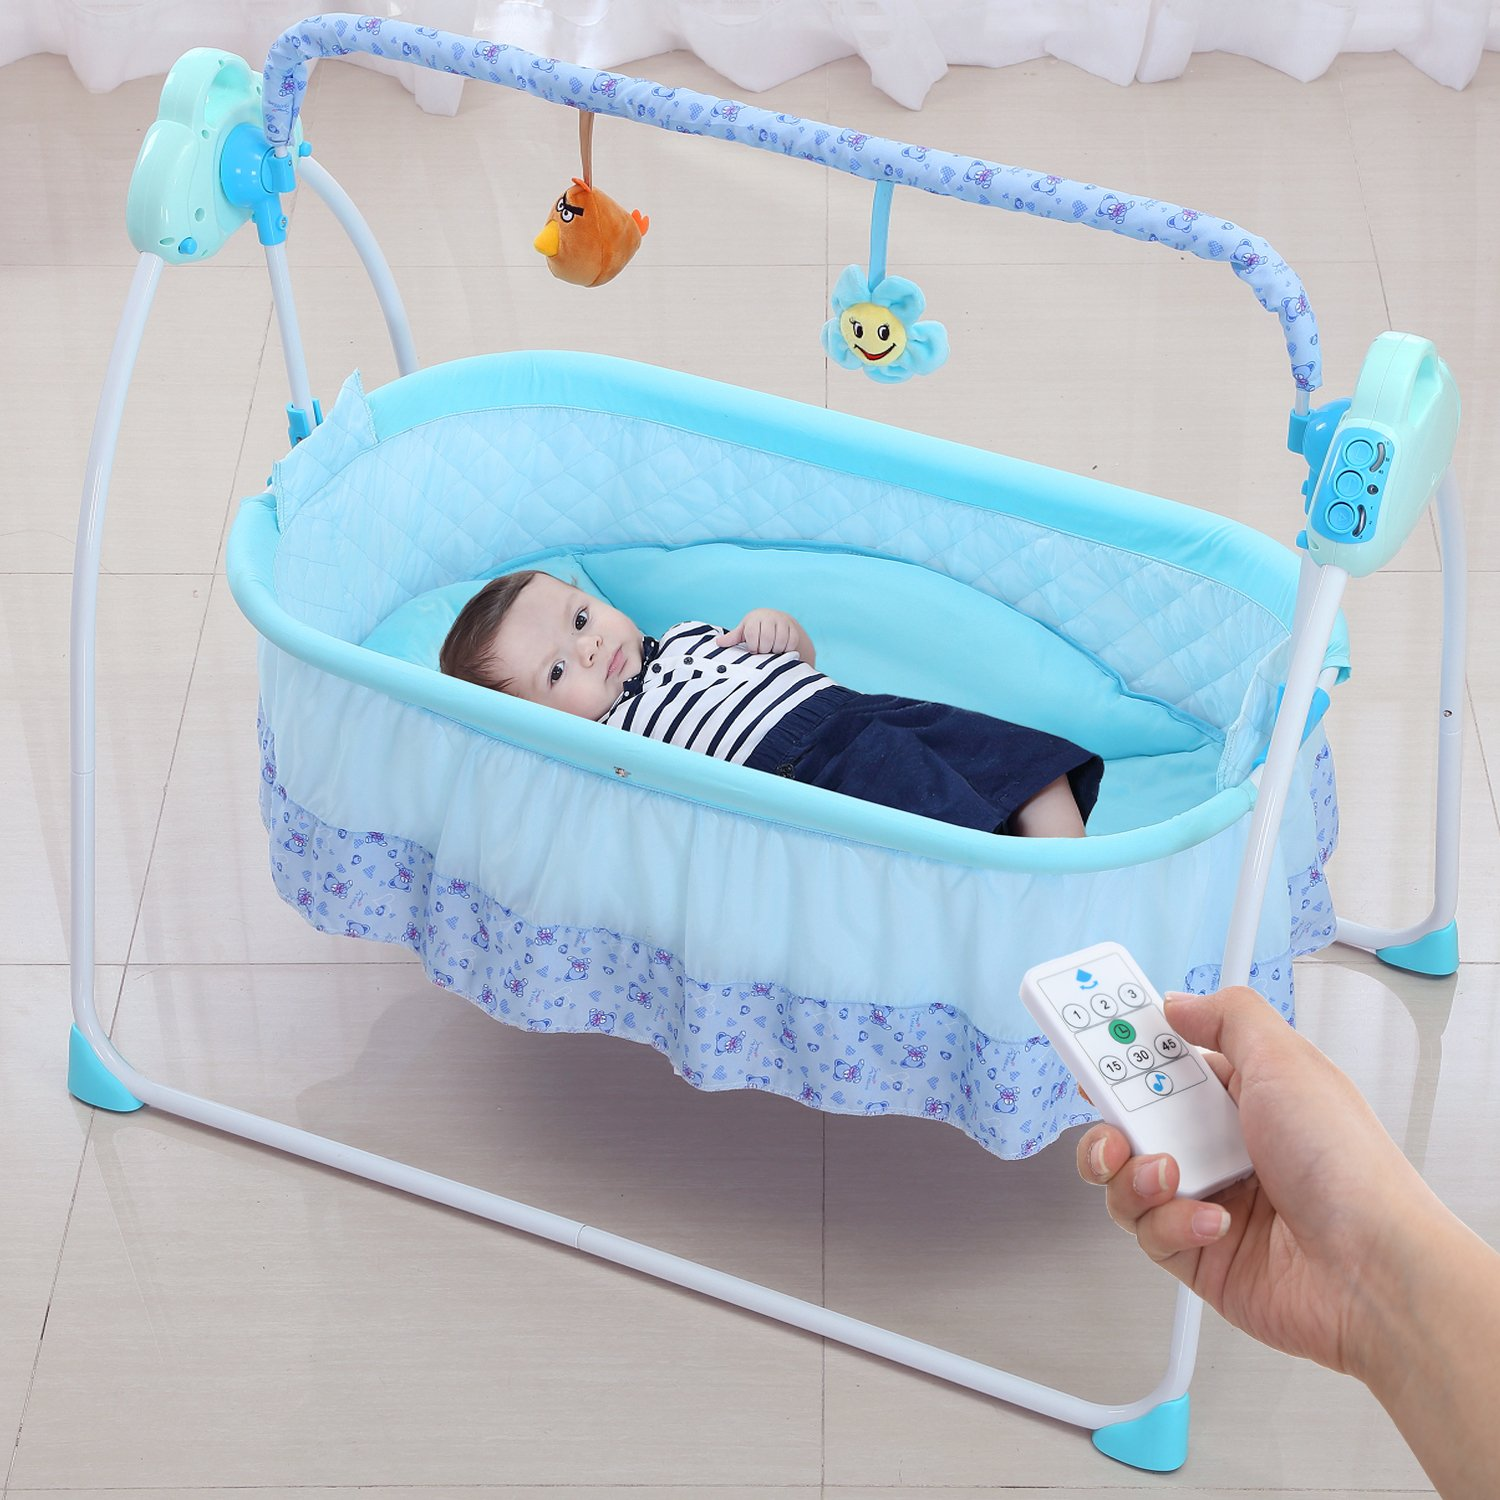 Electric Baby bassinet Swing, Music Remoter Control Sleeping Basket Bed(Blue)